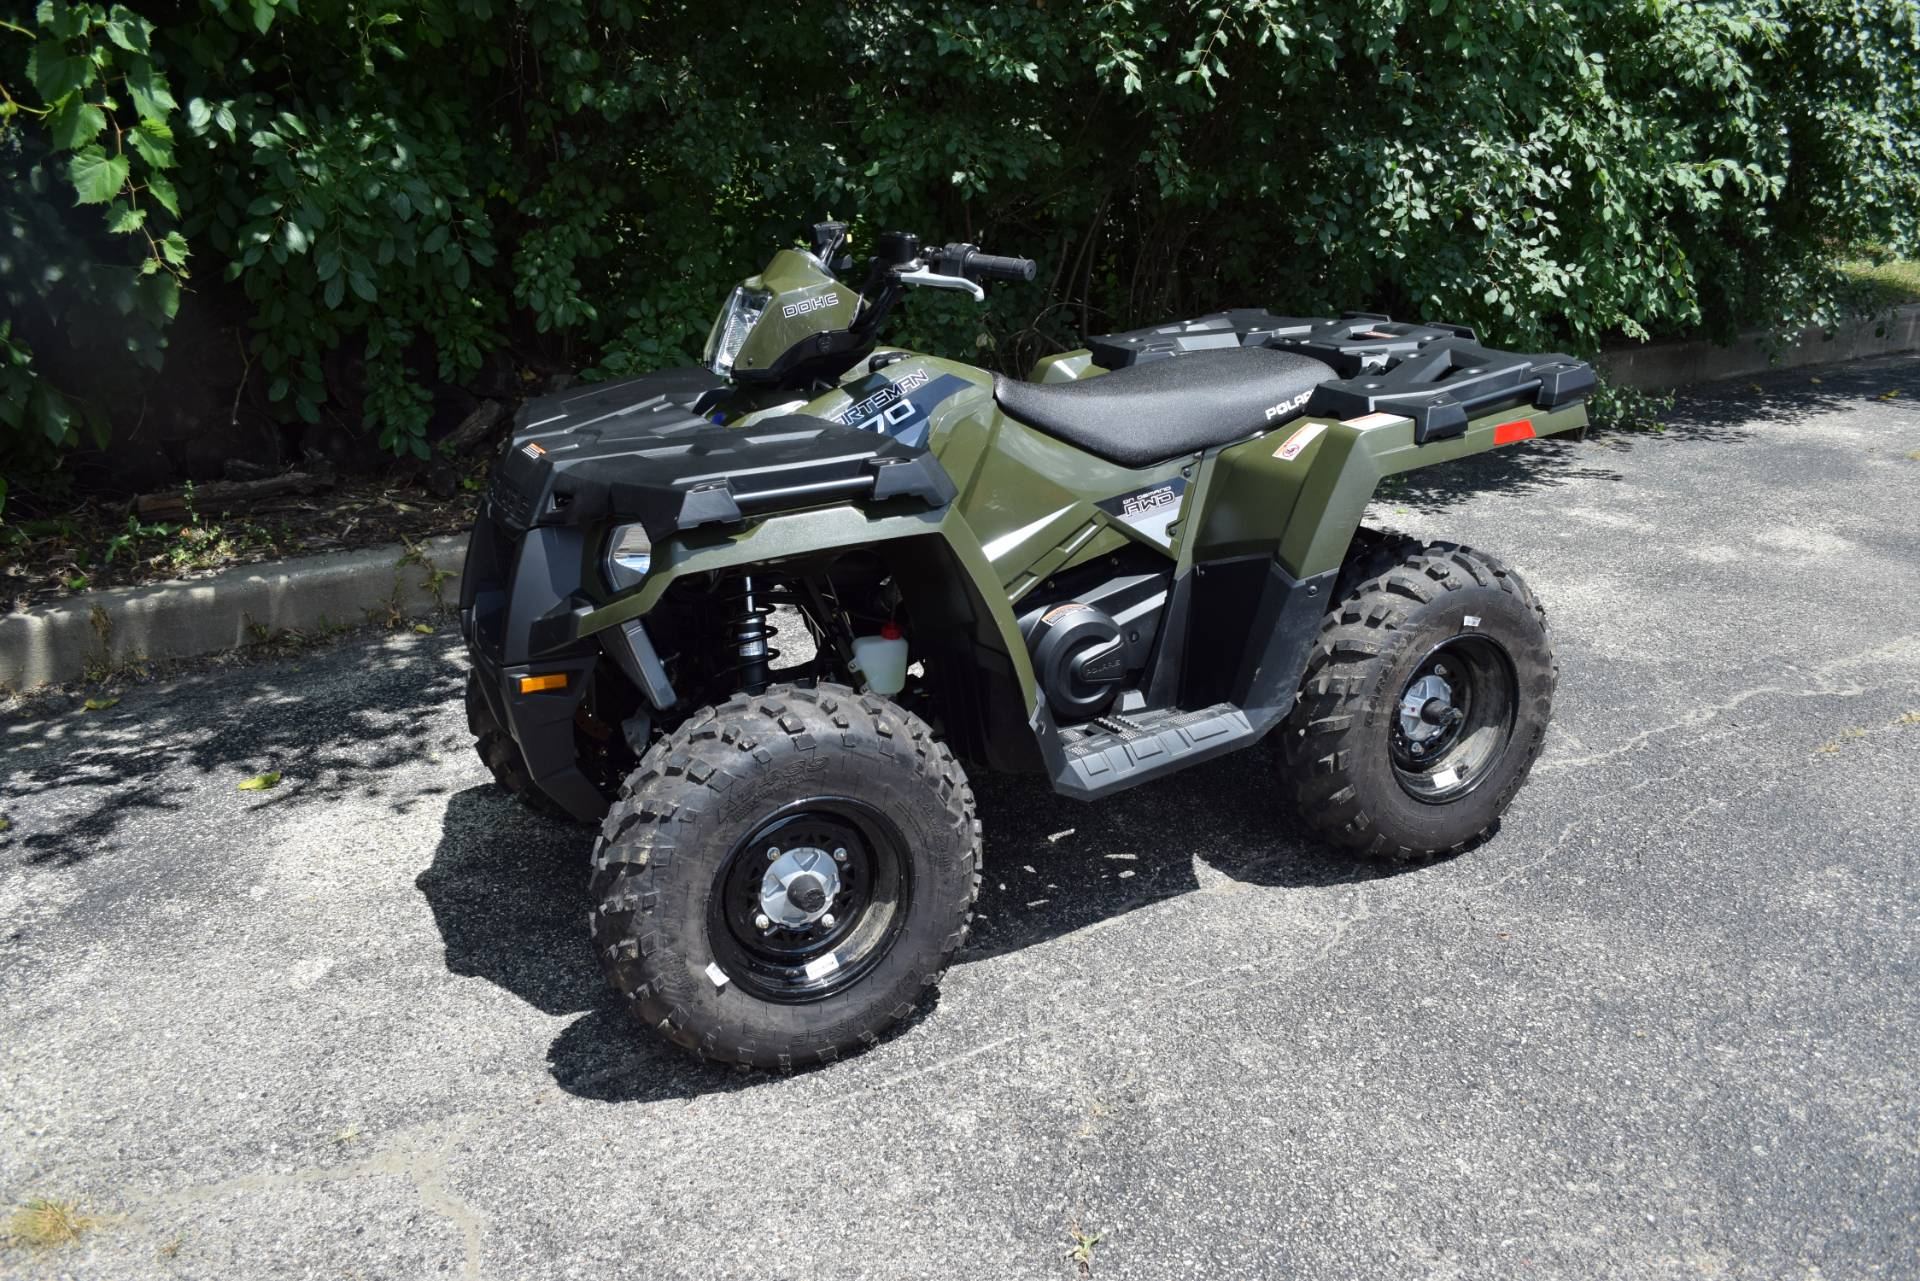 2016 Polaris Sportsman 570 in Wauconda, Illinois - Photo 25